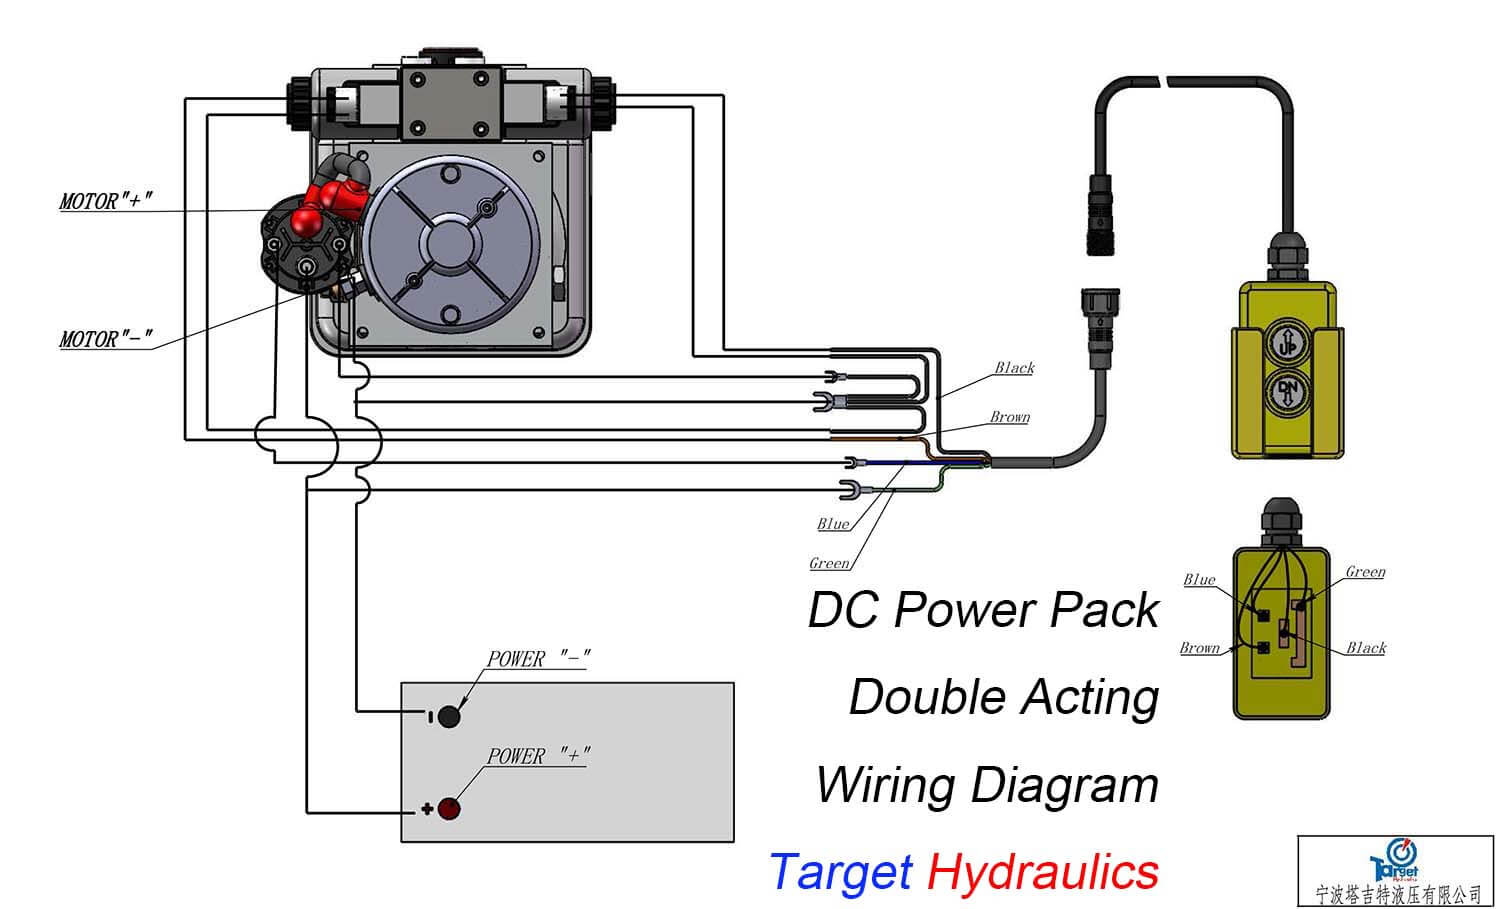 How to Wire_DC Motor Double Acting Power Pack how to wire hydraulic power pack,power unit diagram design Residential Electrical Wiring Diagrams at bakdesigns.co